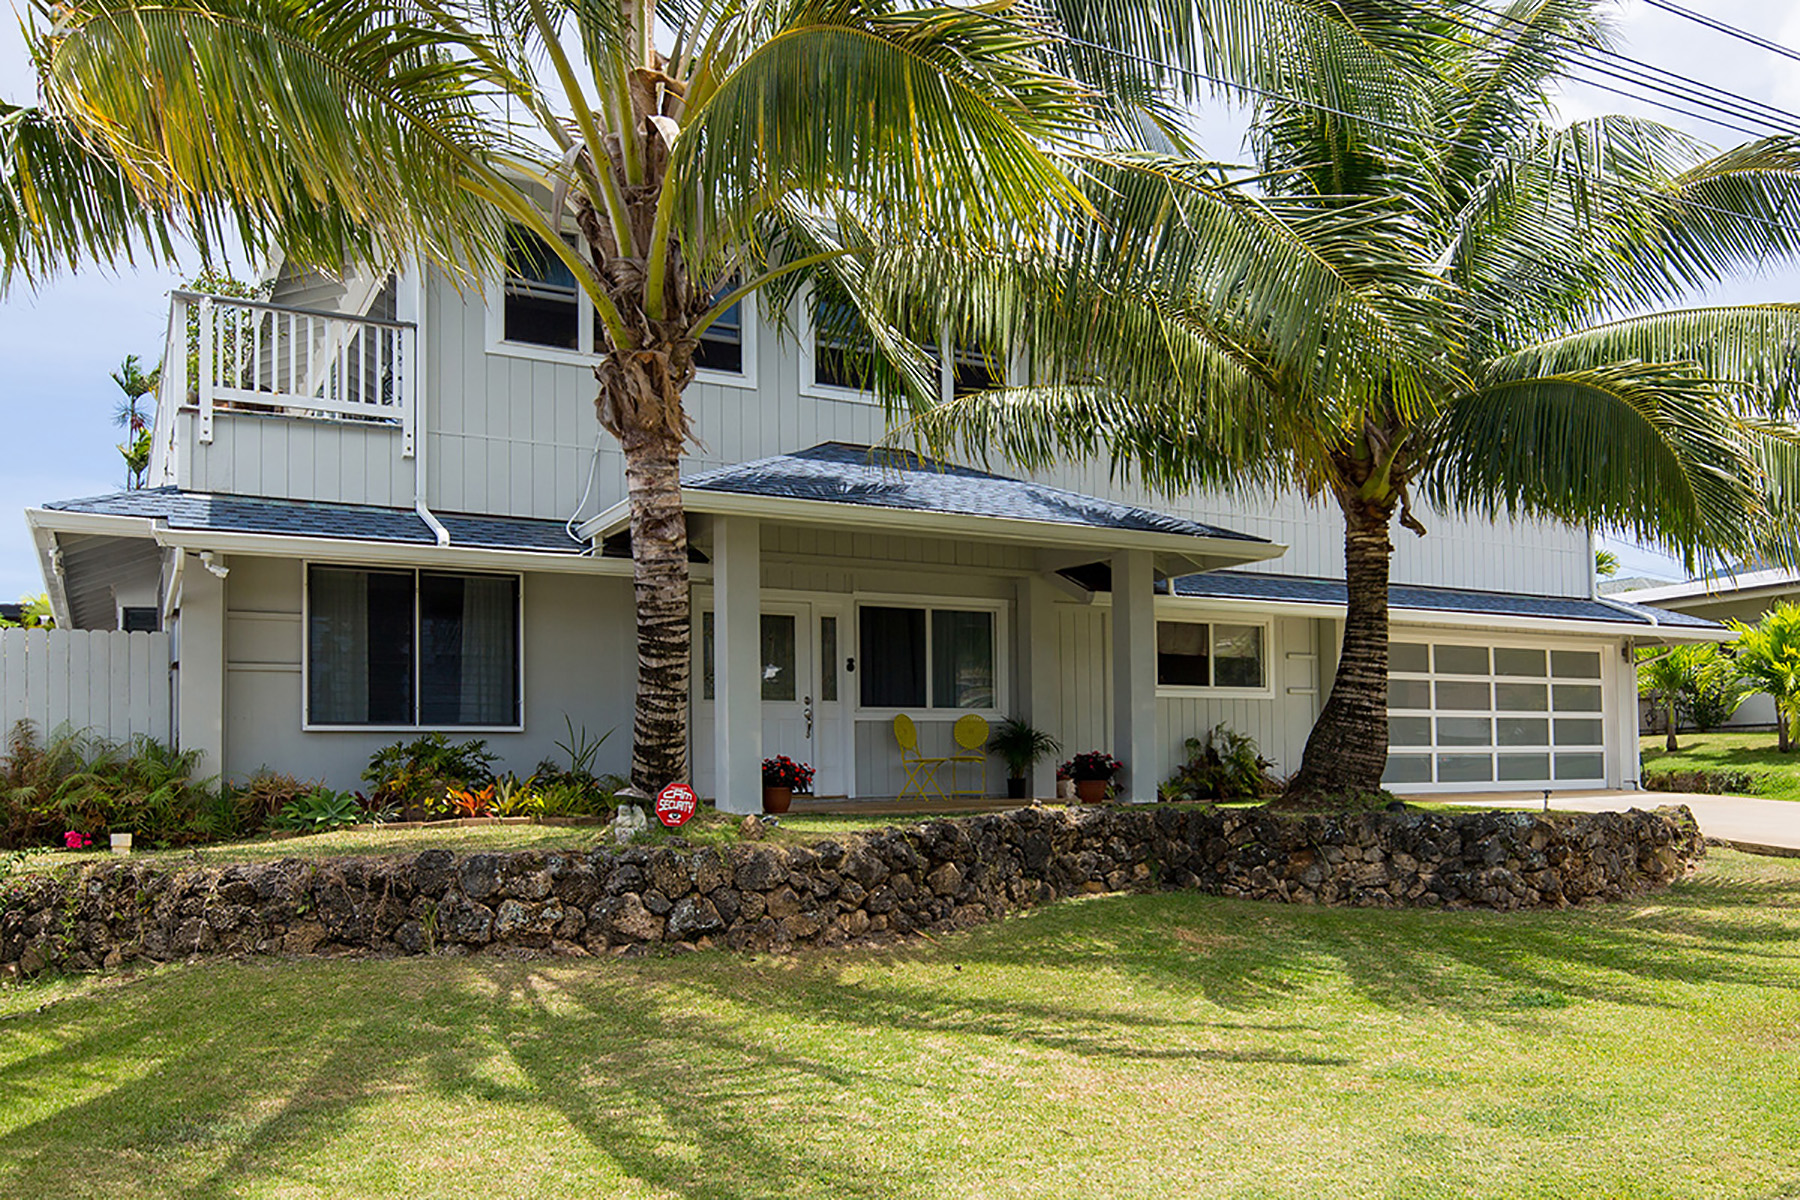 Maison unifamiliale pour l Vente à Luxury by the Sea 45-052 Ka Hanahou Place Kaneohe, Hawaii 96744 États-Unis